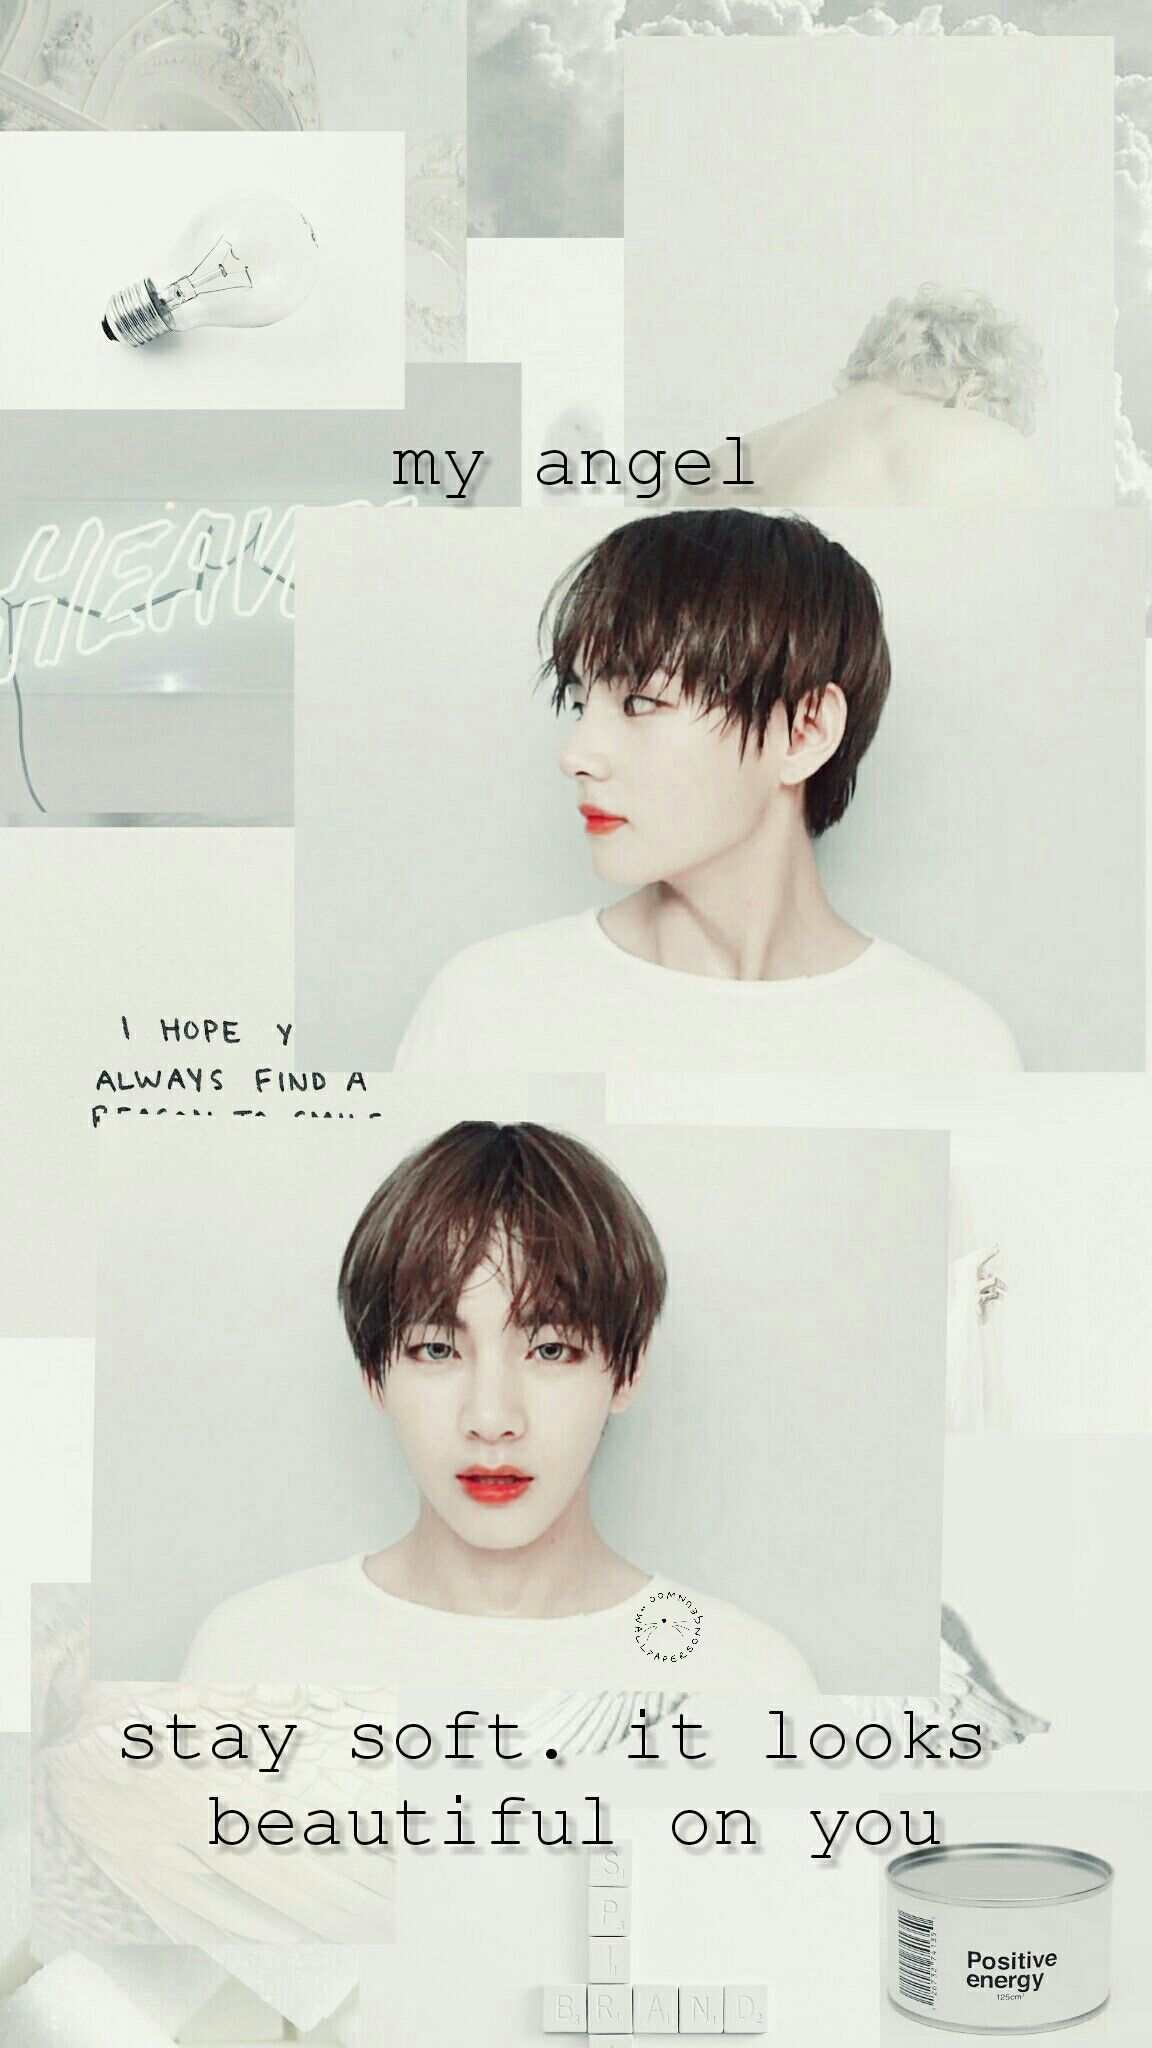 Taehyung Bts Kim White Wallpaper Image By Songeunwoo Discover All Images By Songeunwoo Find More Awesome Taehyung Wallpaper Bts Taehyung White Wallpaper Wallpaper wa bts v